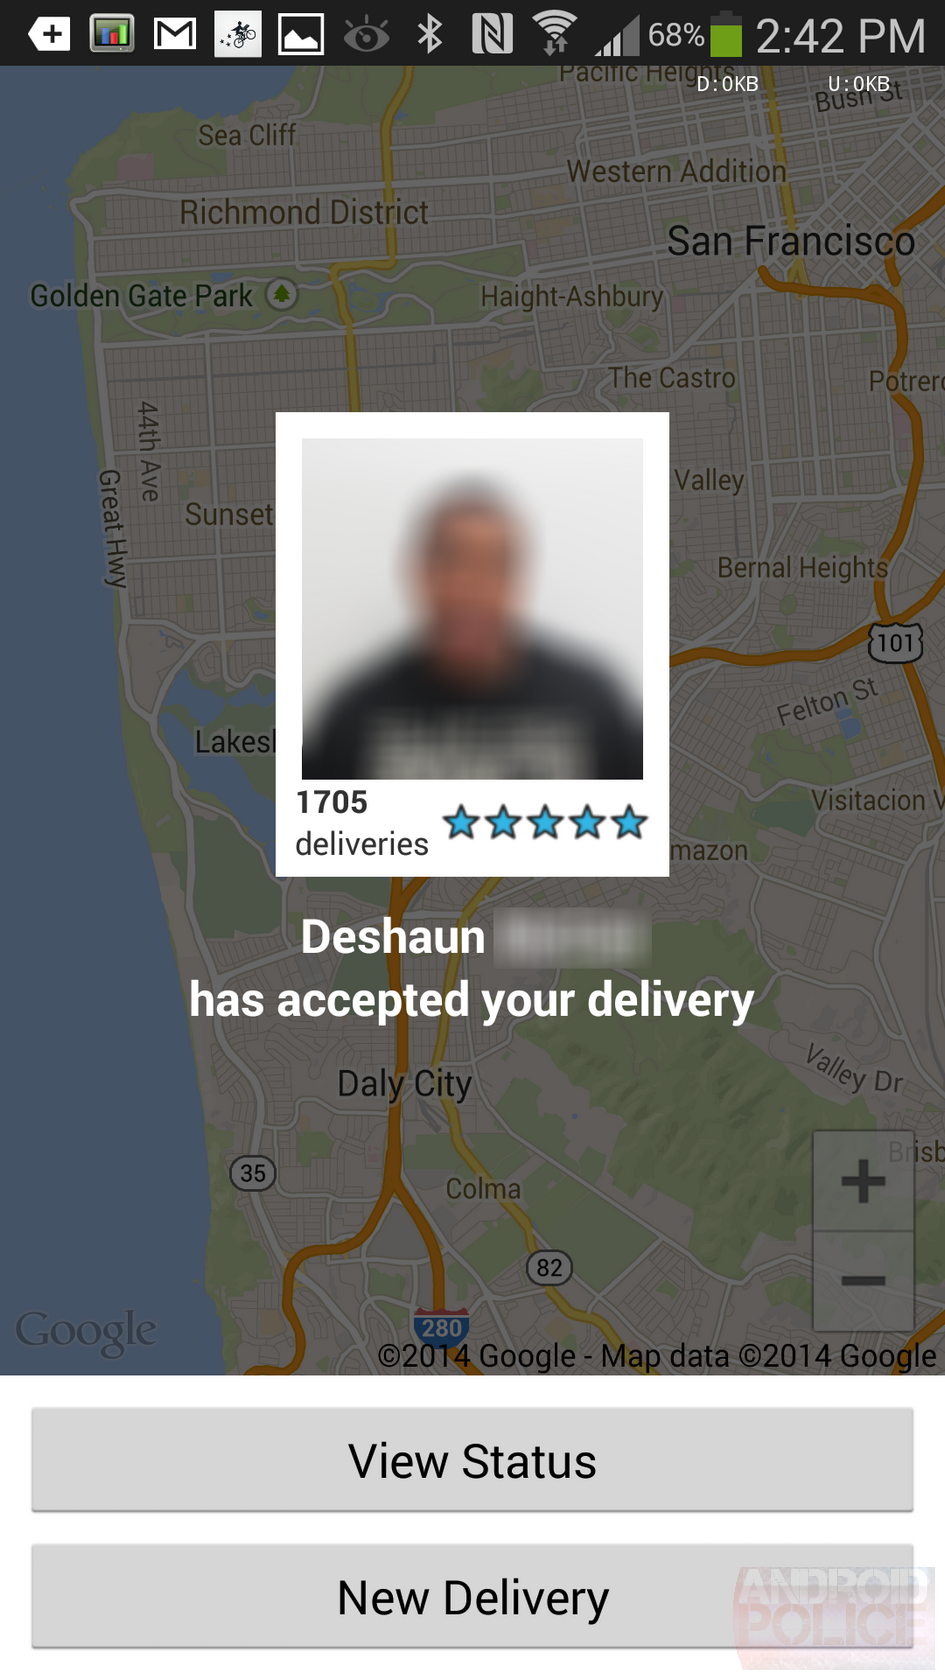 New App] Postmates Lets You Get Deliveries From Any Restaurant Or